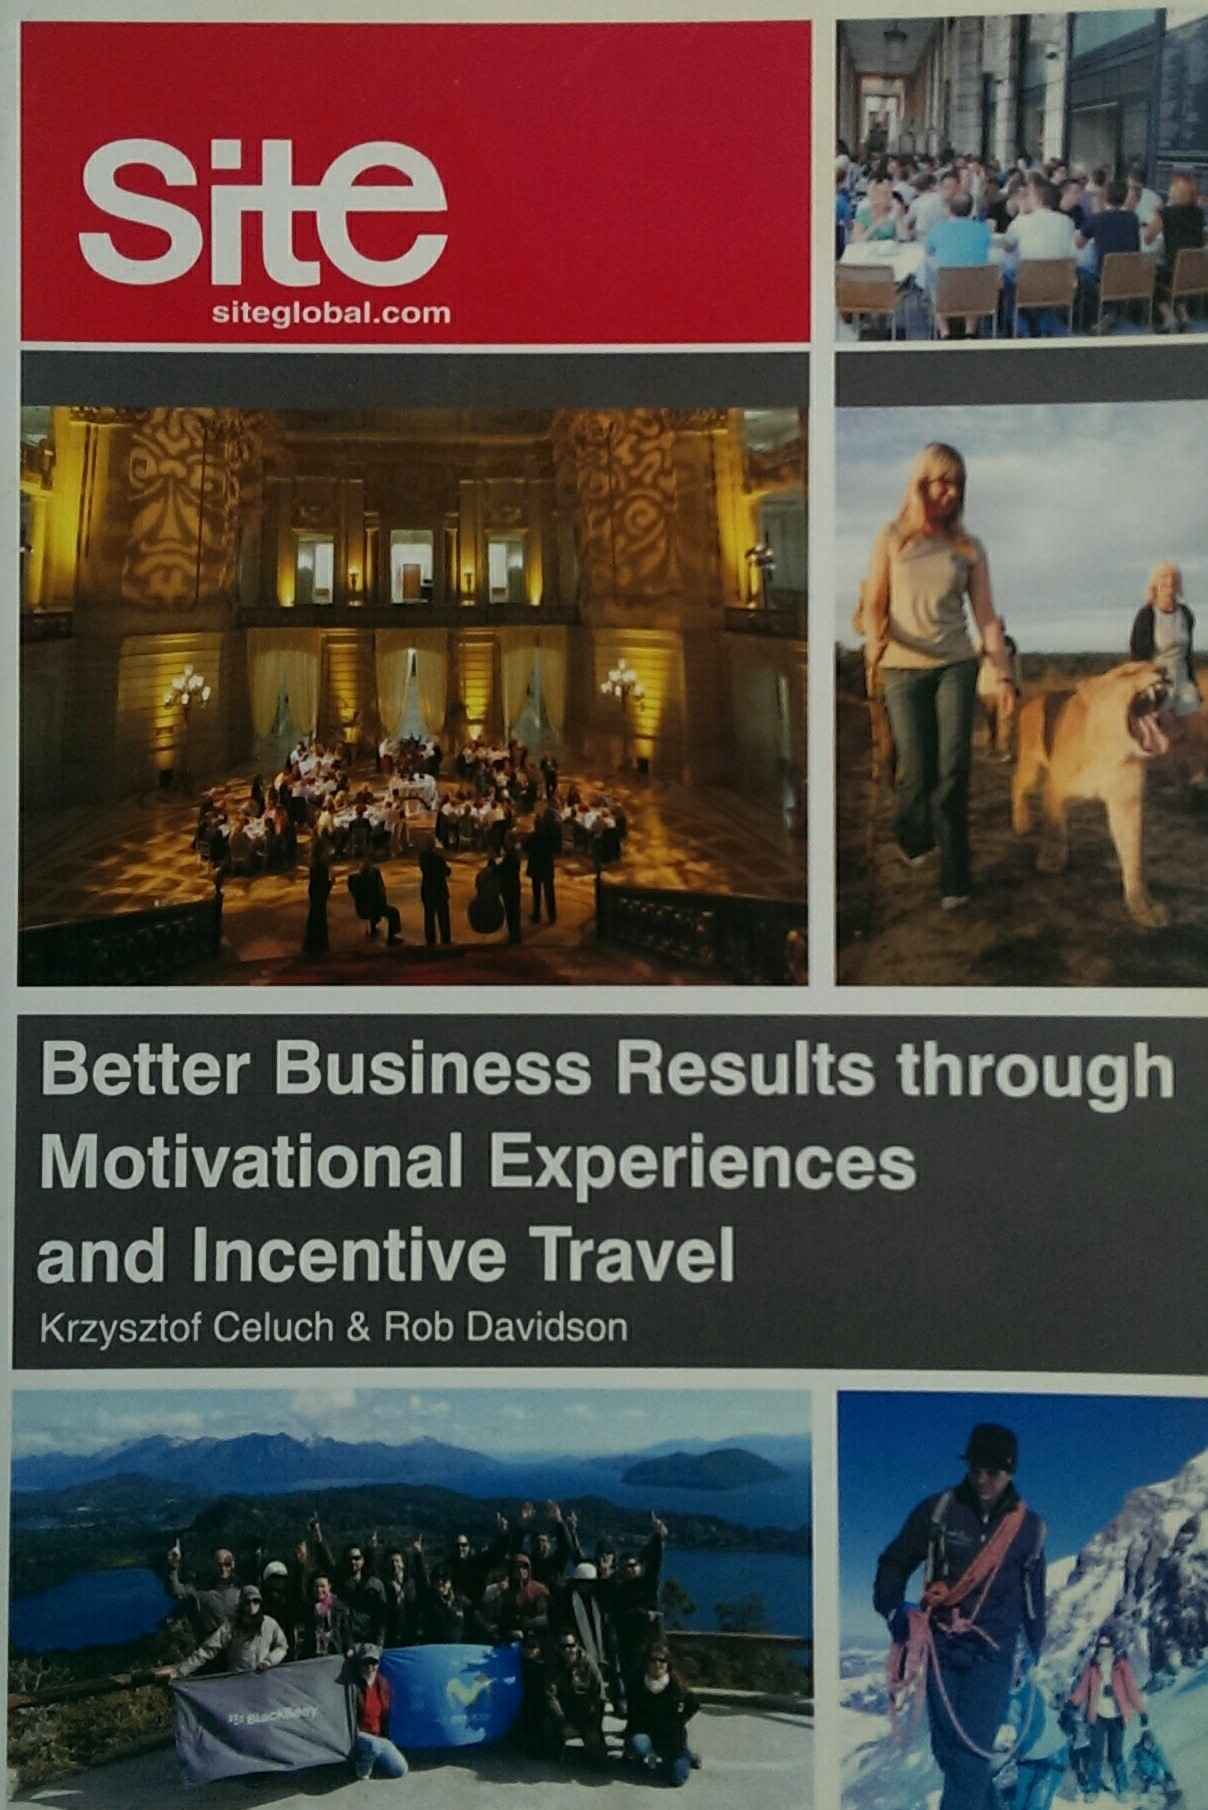 Better-Business-Results-through-Motivational-Experiences-and-Incentive-Travel-rob-davidson-krzysztof-celuch-book-eventprofs-mice-industry-experts